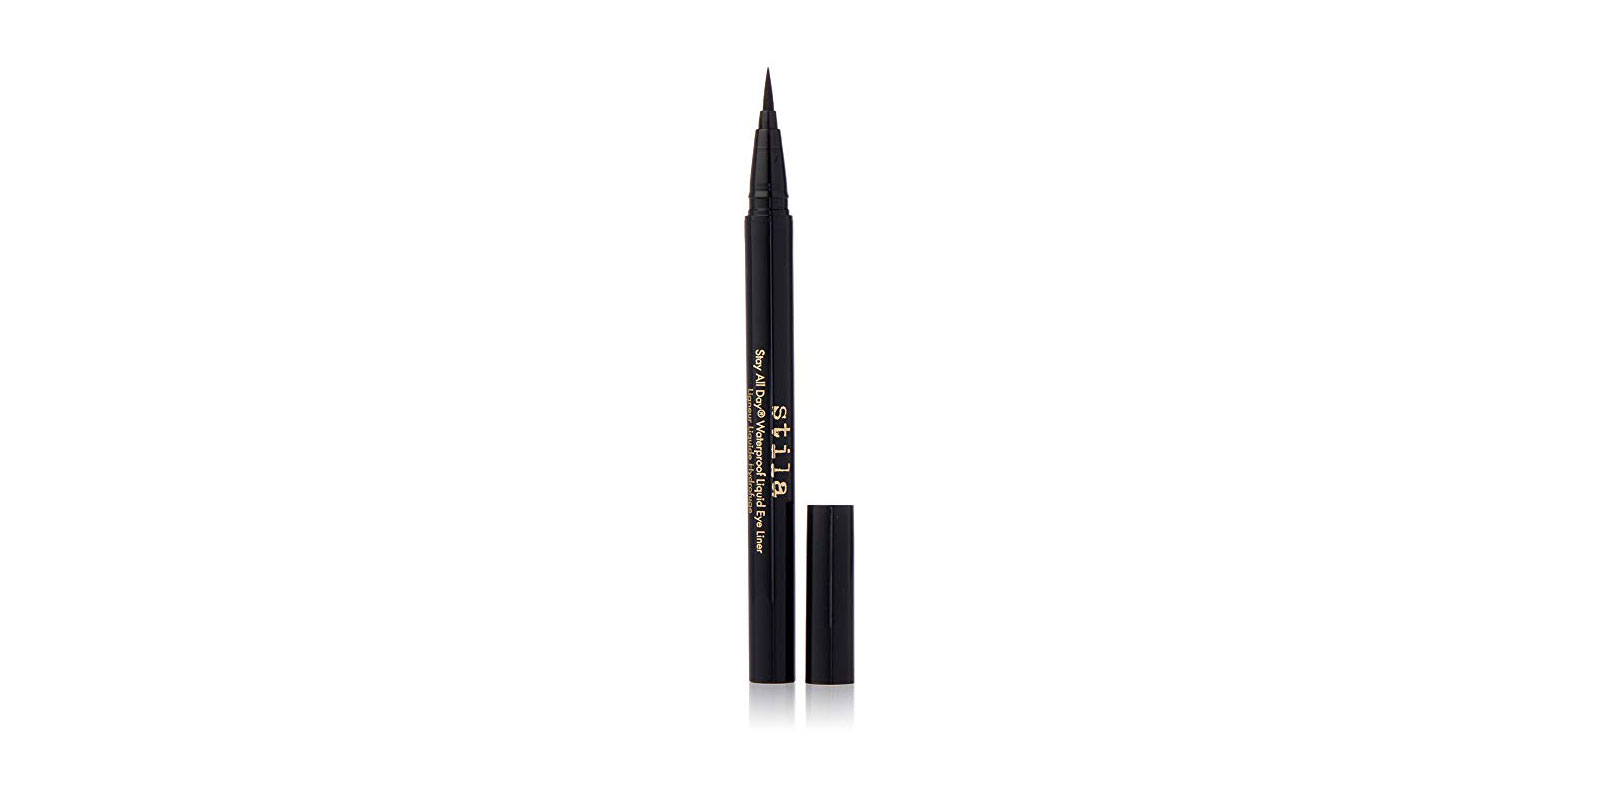 Stila Stay All Day Waterproof Eyeliner